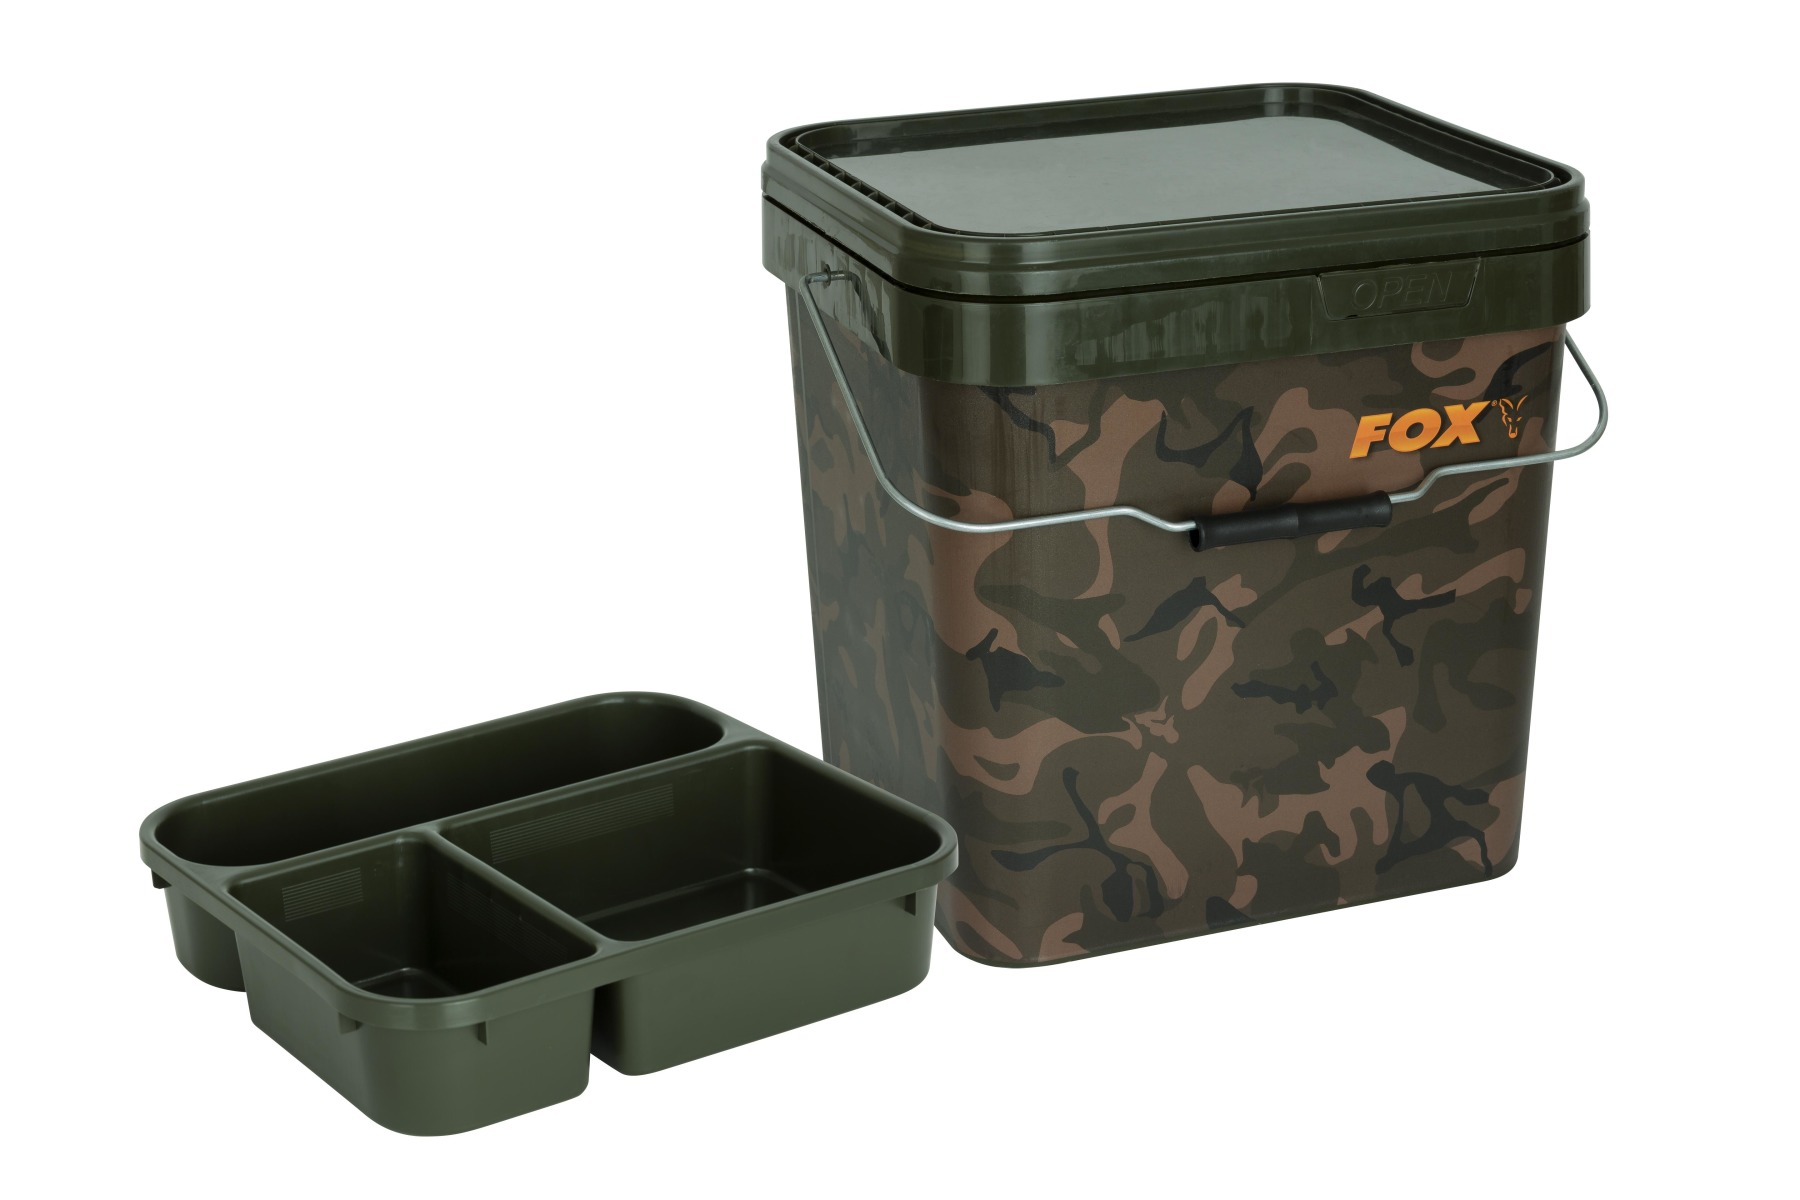 17ltr bucket with insert